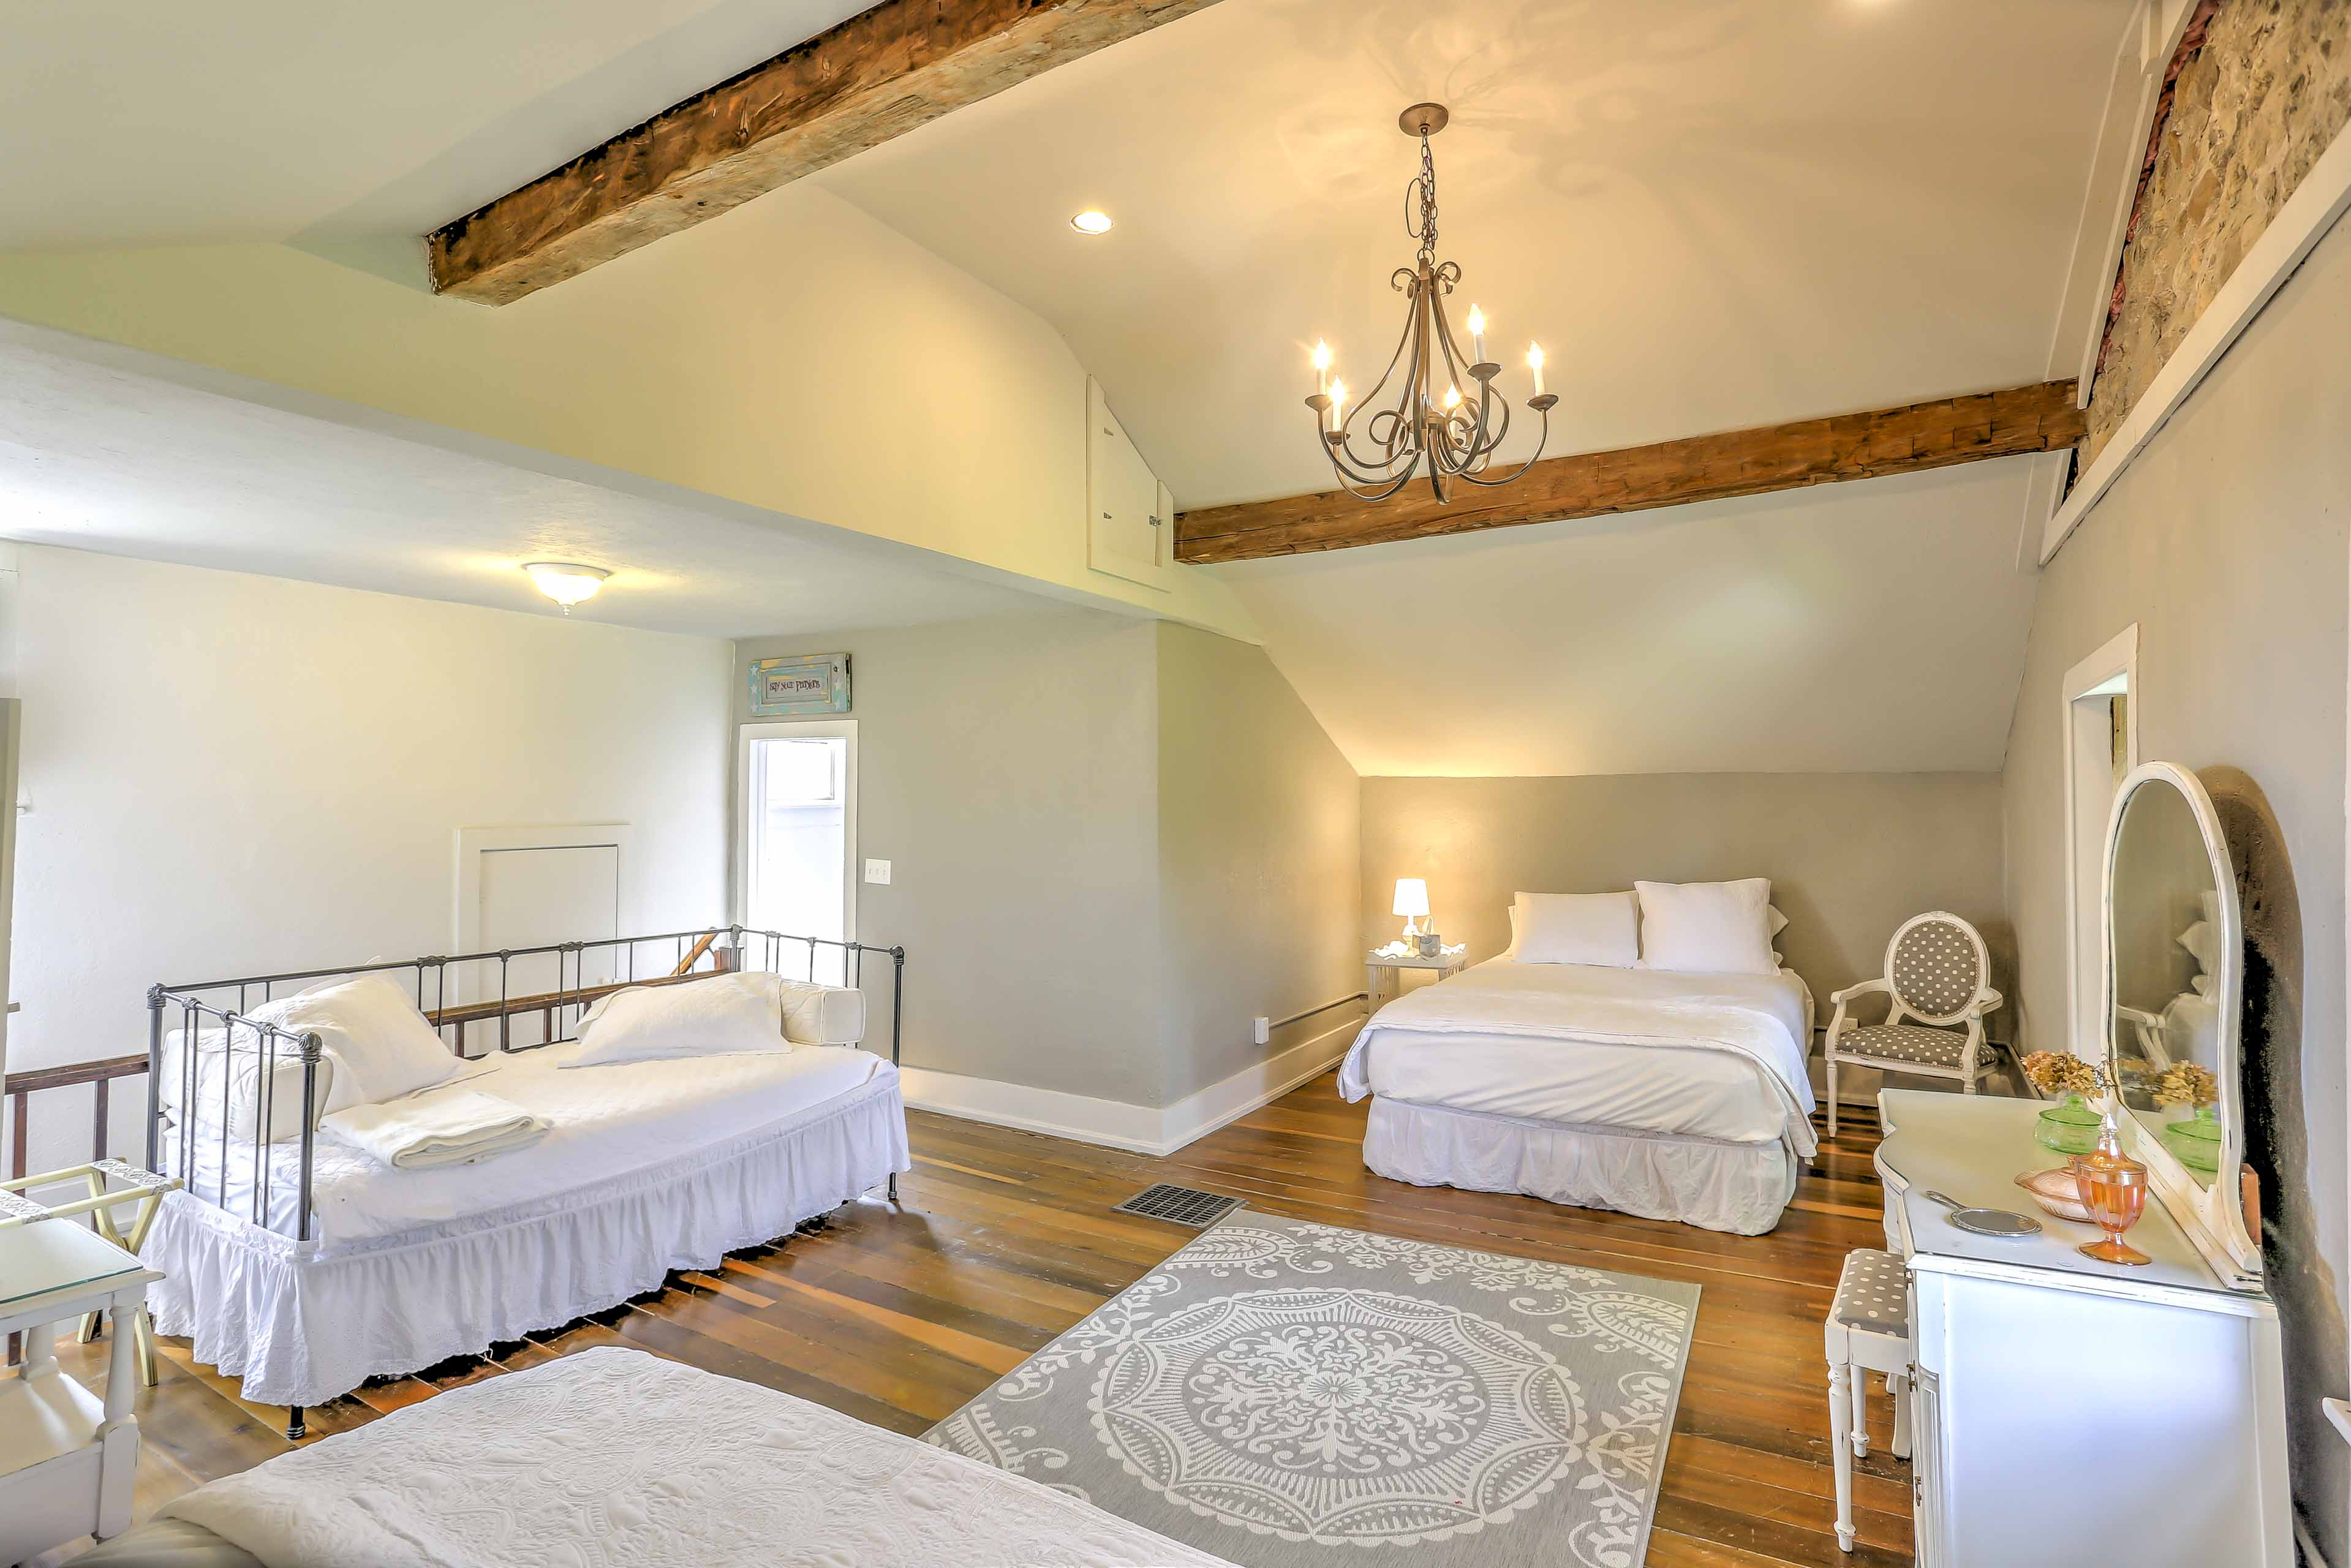 The dormitory bedroom features 2 queen beds and a twin trundle bed set.